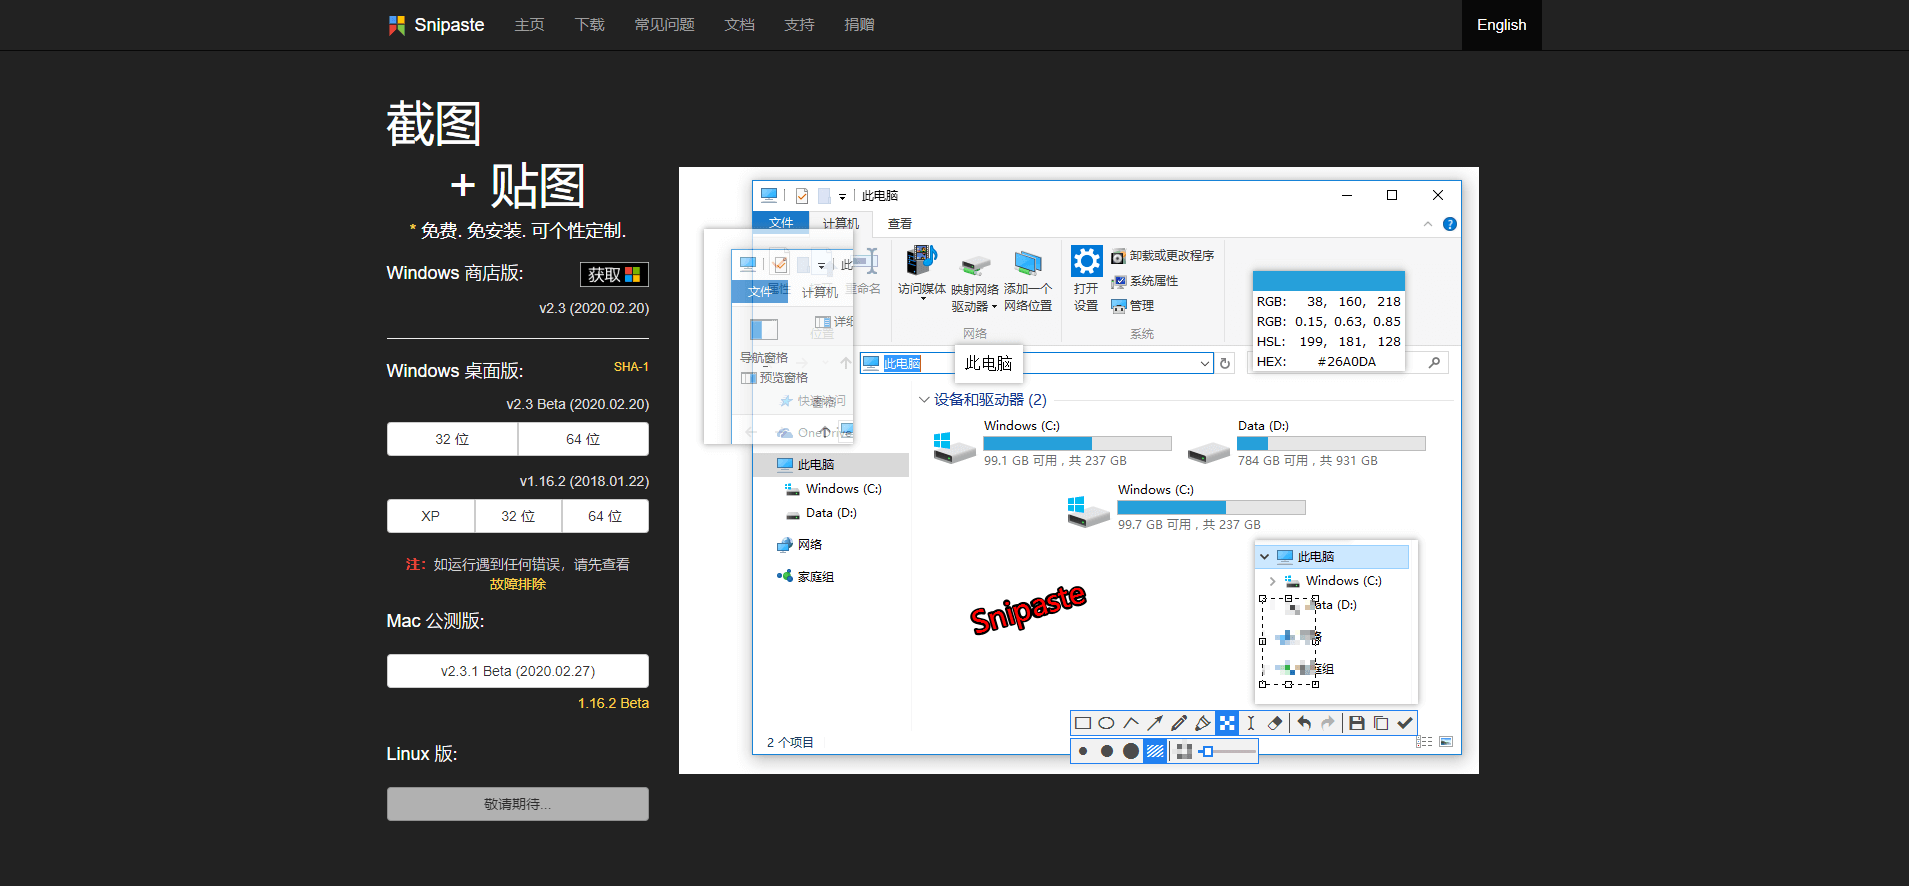 https://www.v2fy.com/asset/windows10_softs_recommand/snipaste.png